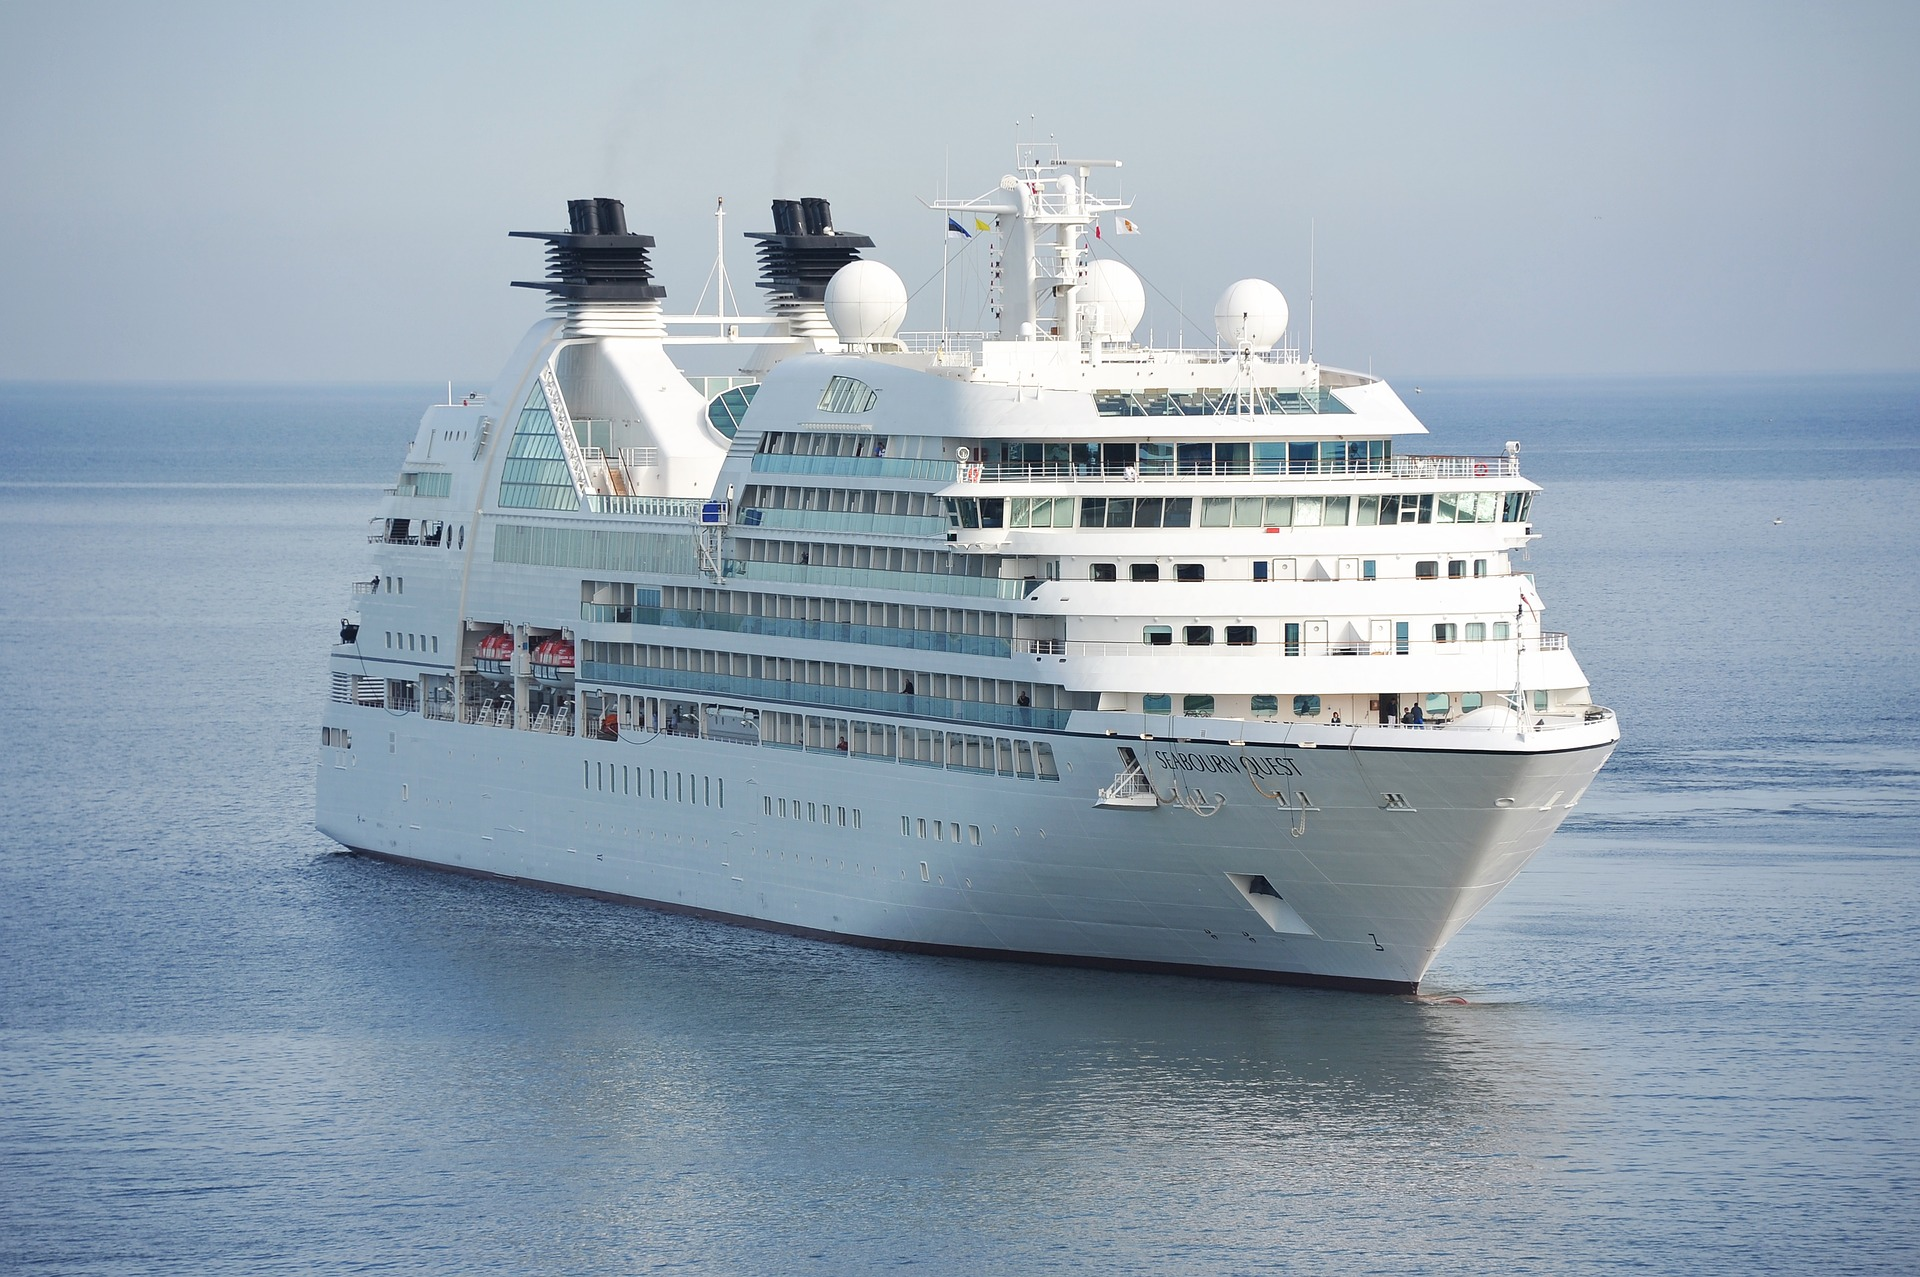 Cruise ship Seabourn Quest on the ocean